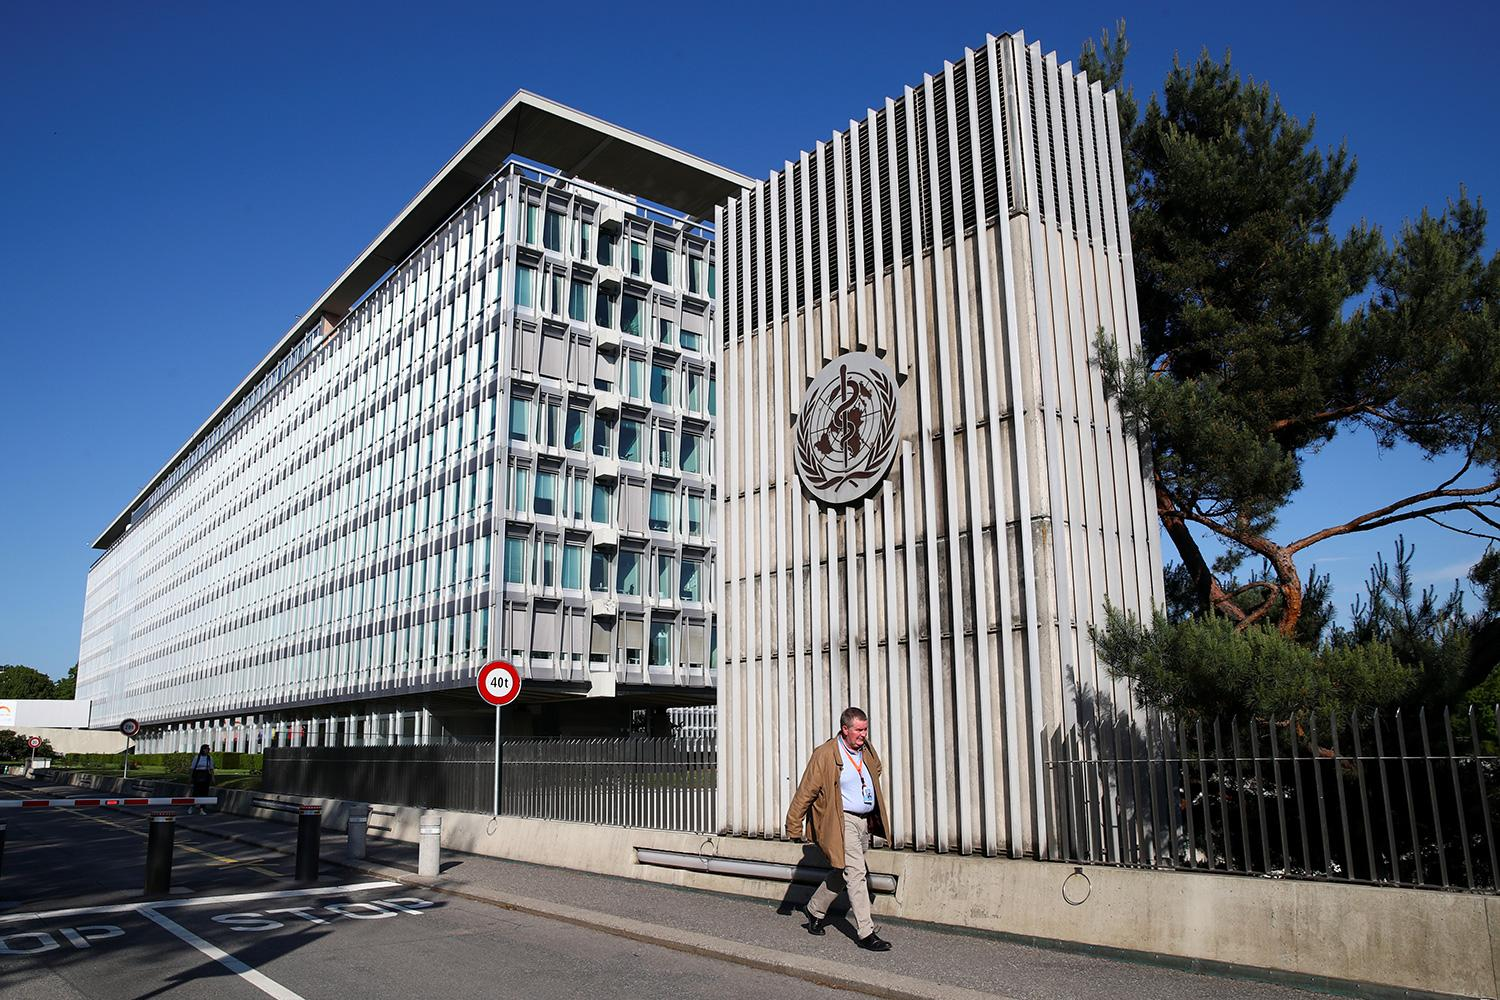 Mike Ryan, Executive Director of the World Health Organization (WHO), walks past the WHO headquarters during the World Health Assembly in Geneva, Switzerland, on May 18, 2020. The photo shows the buildings with the official in front on a brilliant spring day with a clear blue sky. REUTERS/Denis Balibouse